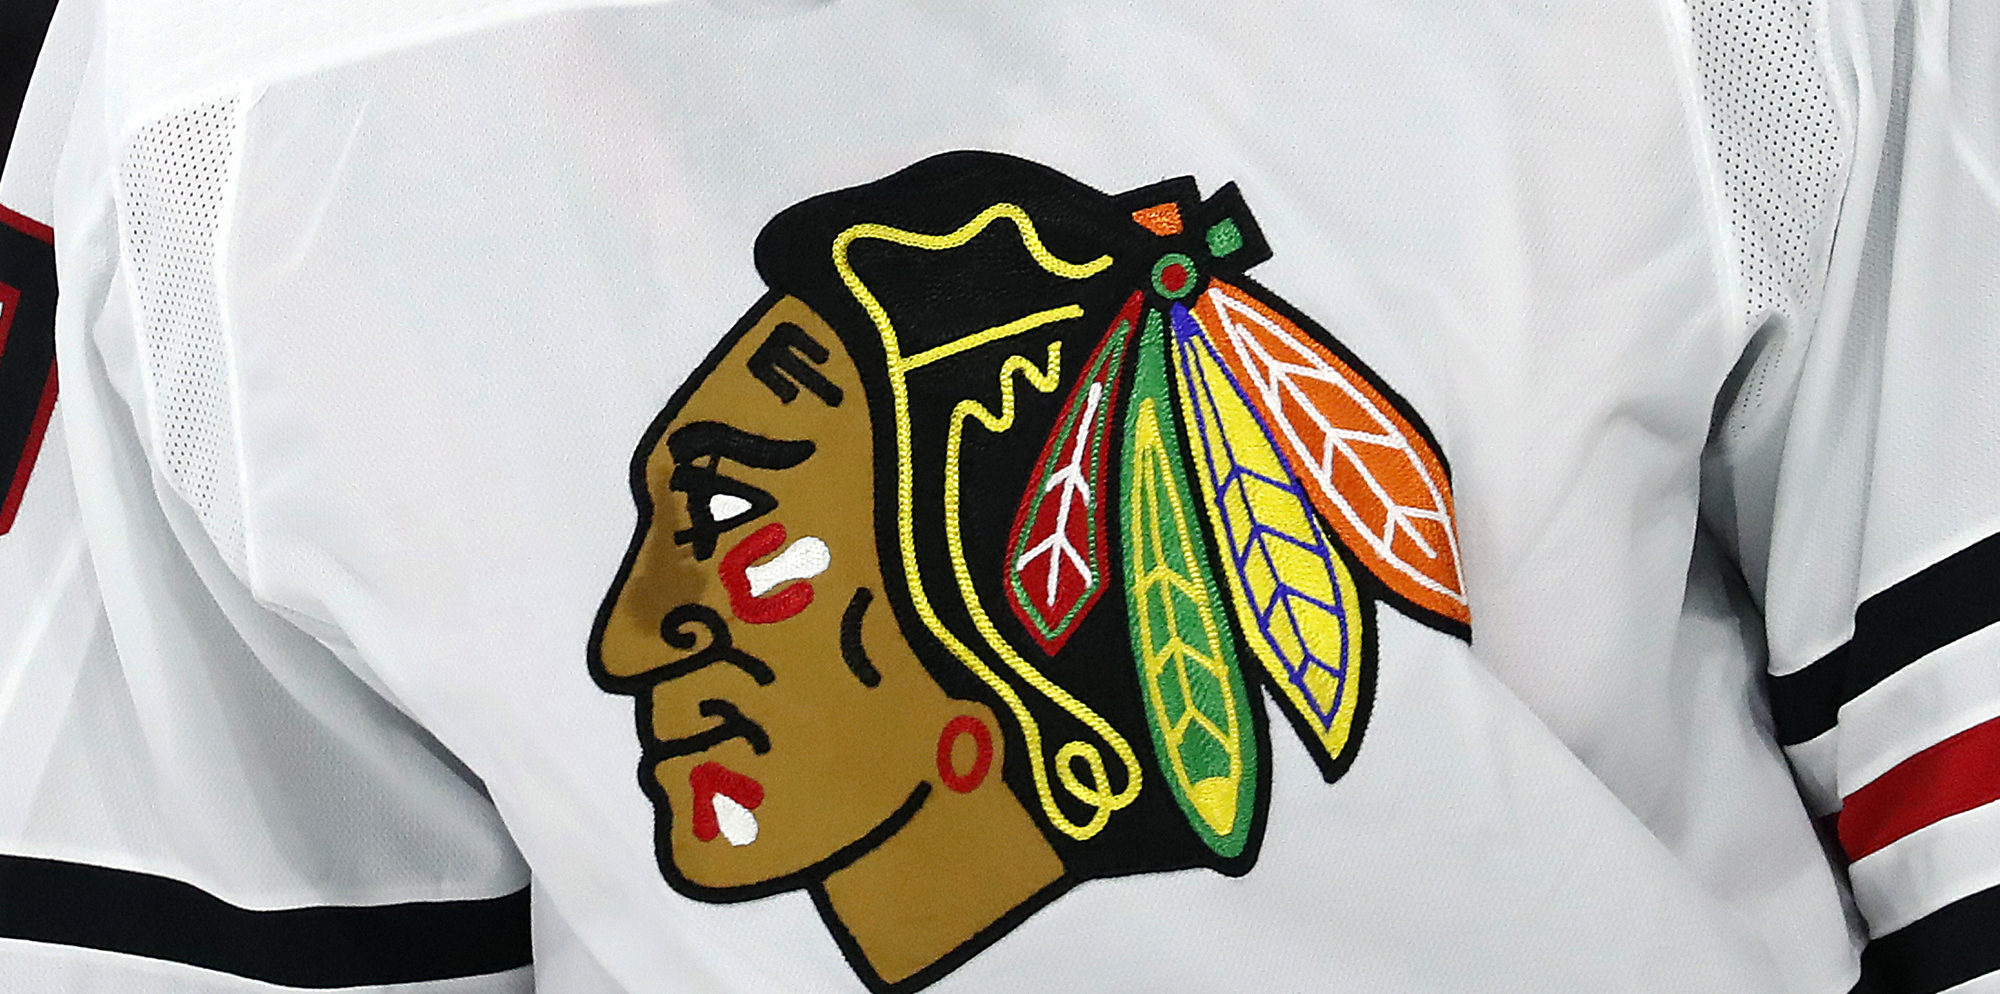 Commissioner Gary Bettman said the league is waiting for an independent review of the Blackhawks alleged cover-up of sexual abuse before proceeding.